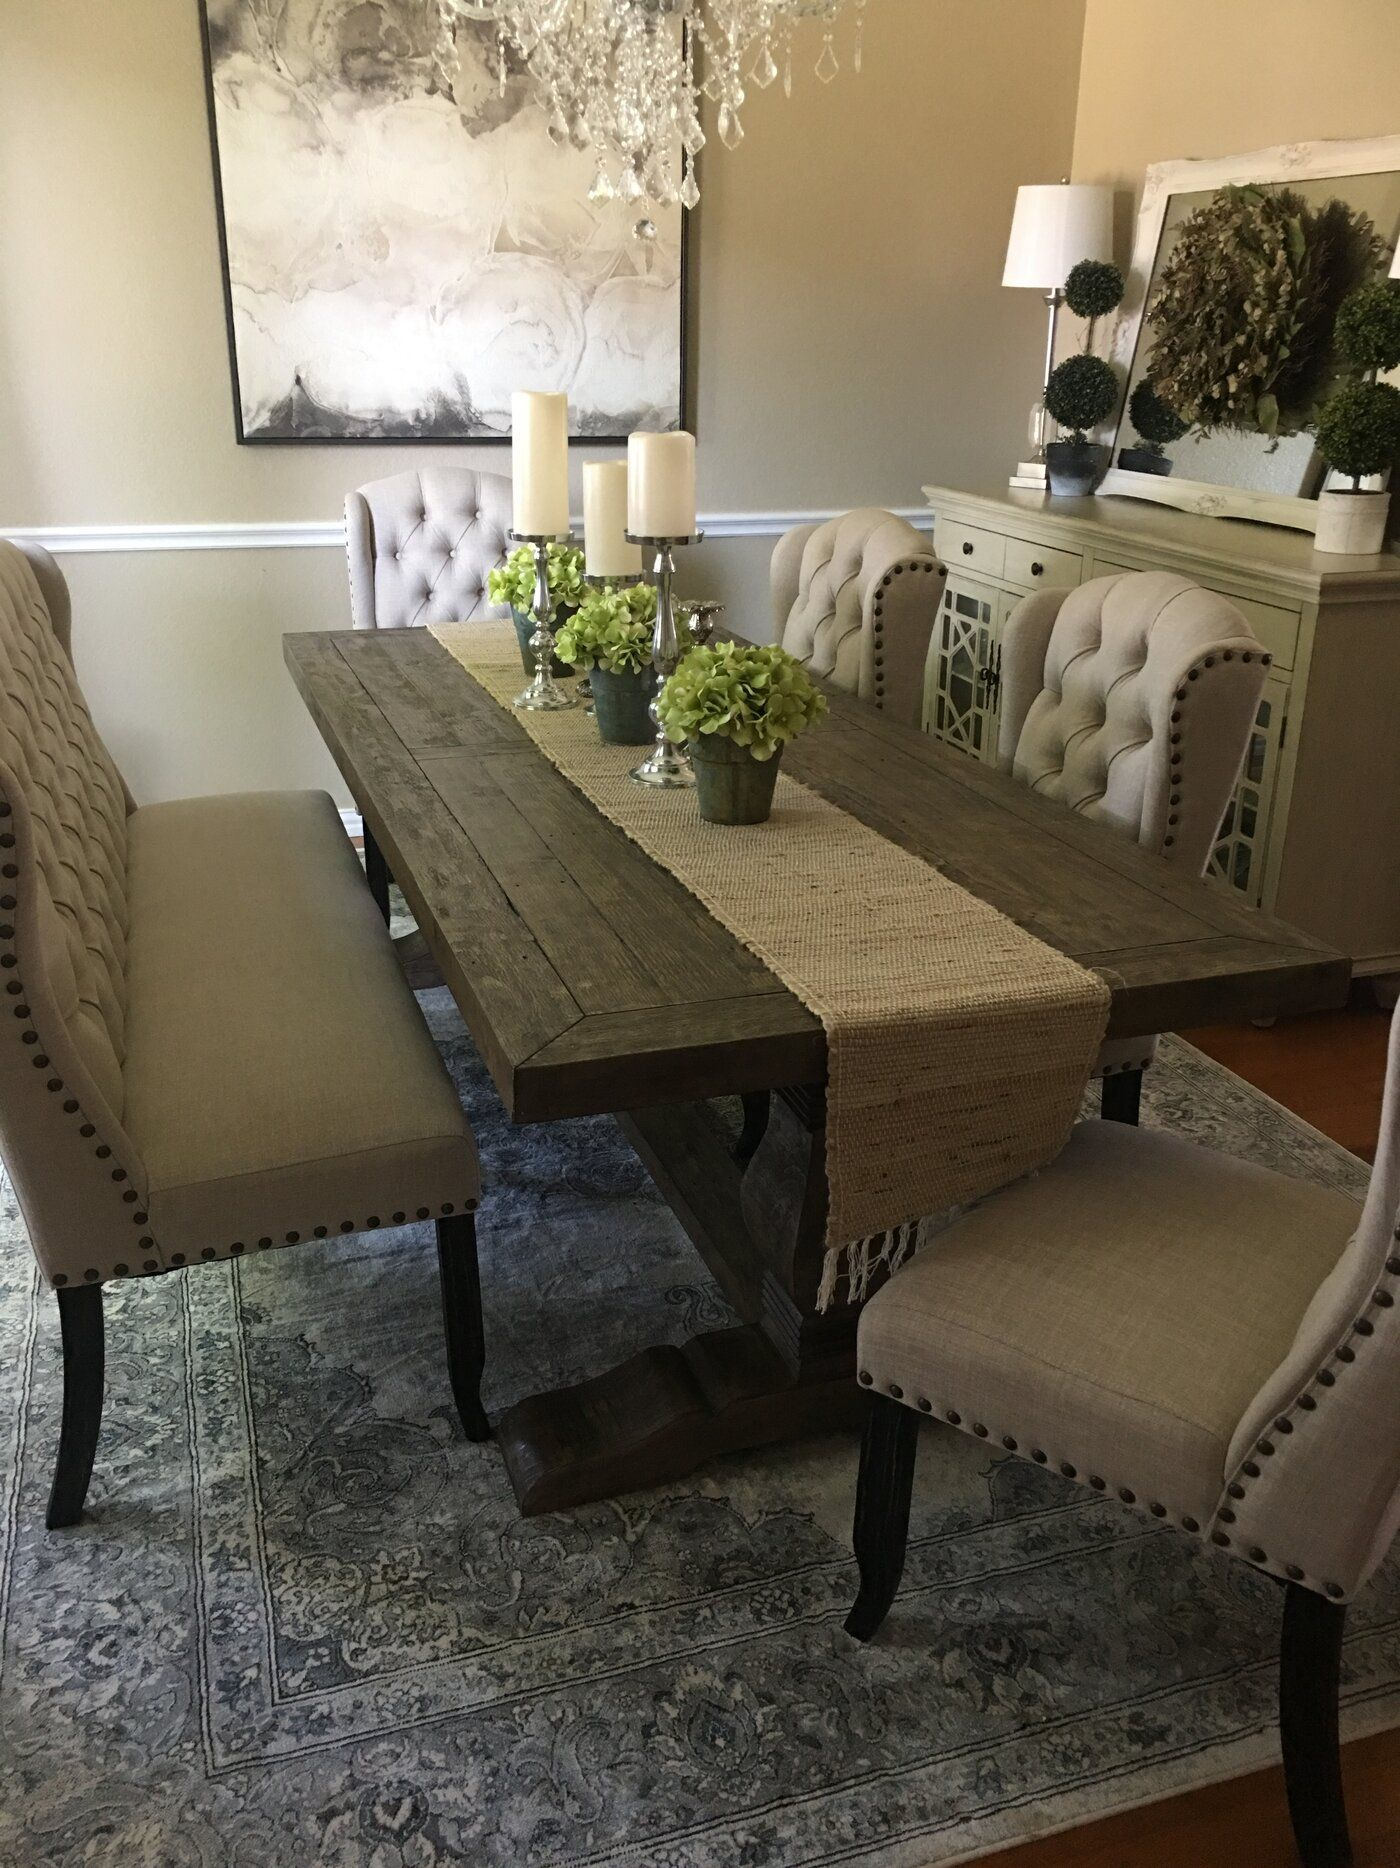 Gertrude Solid Wood Dining Table Dinning Room Table Decor Solid Wood Dining Table Dining Room Table Centerpieces